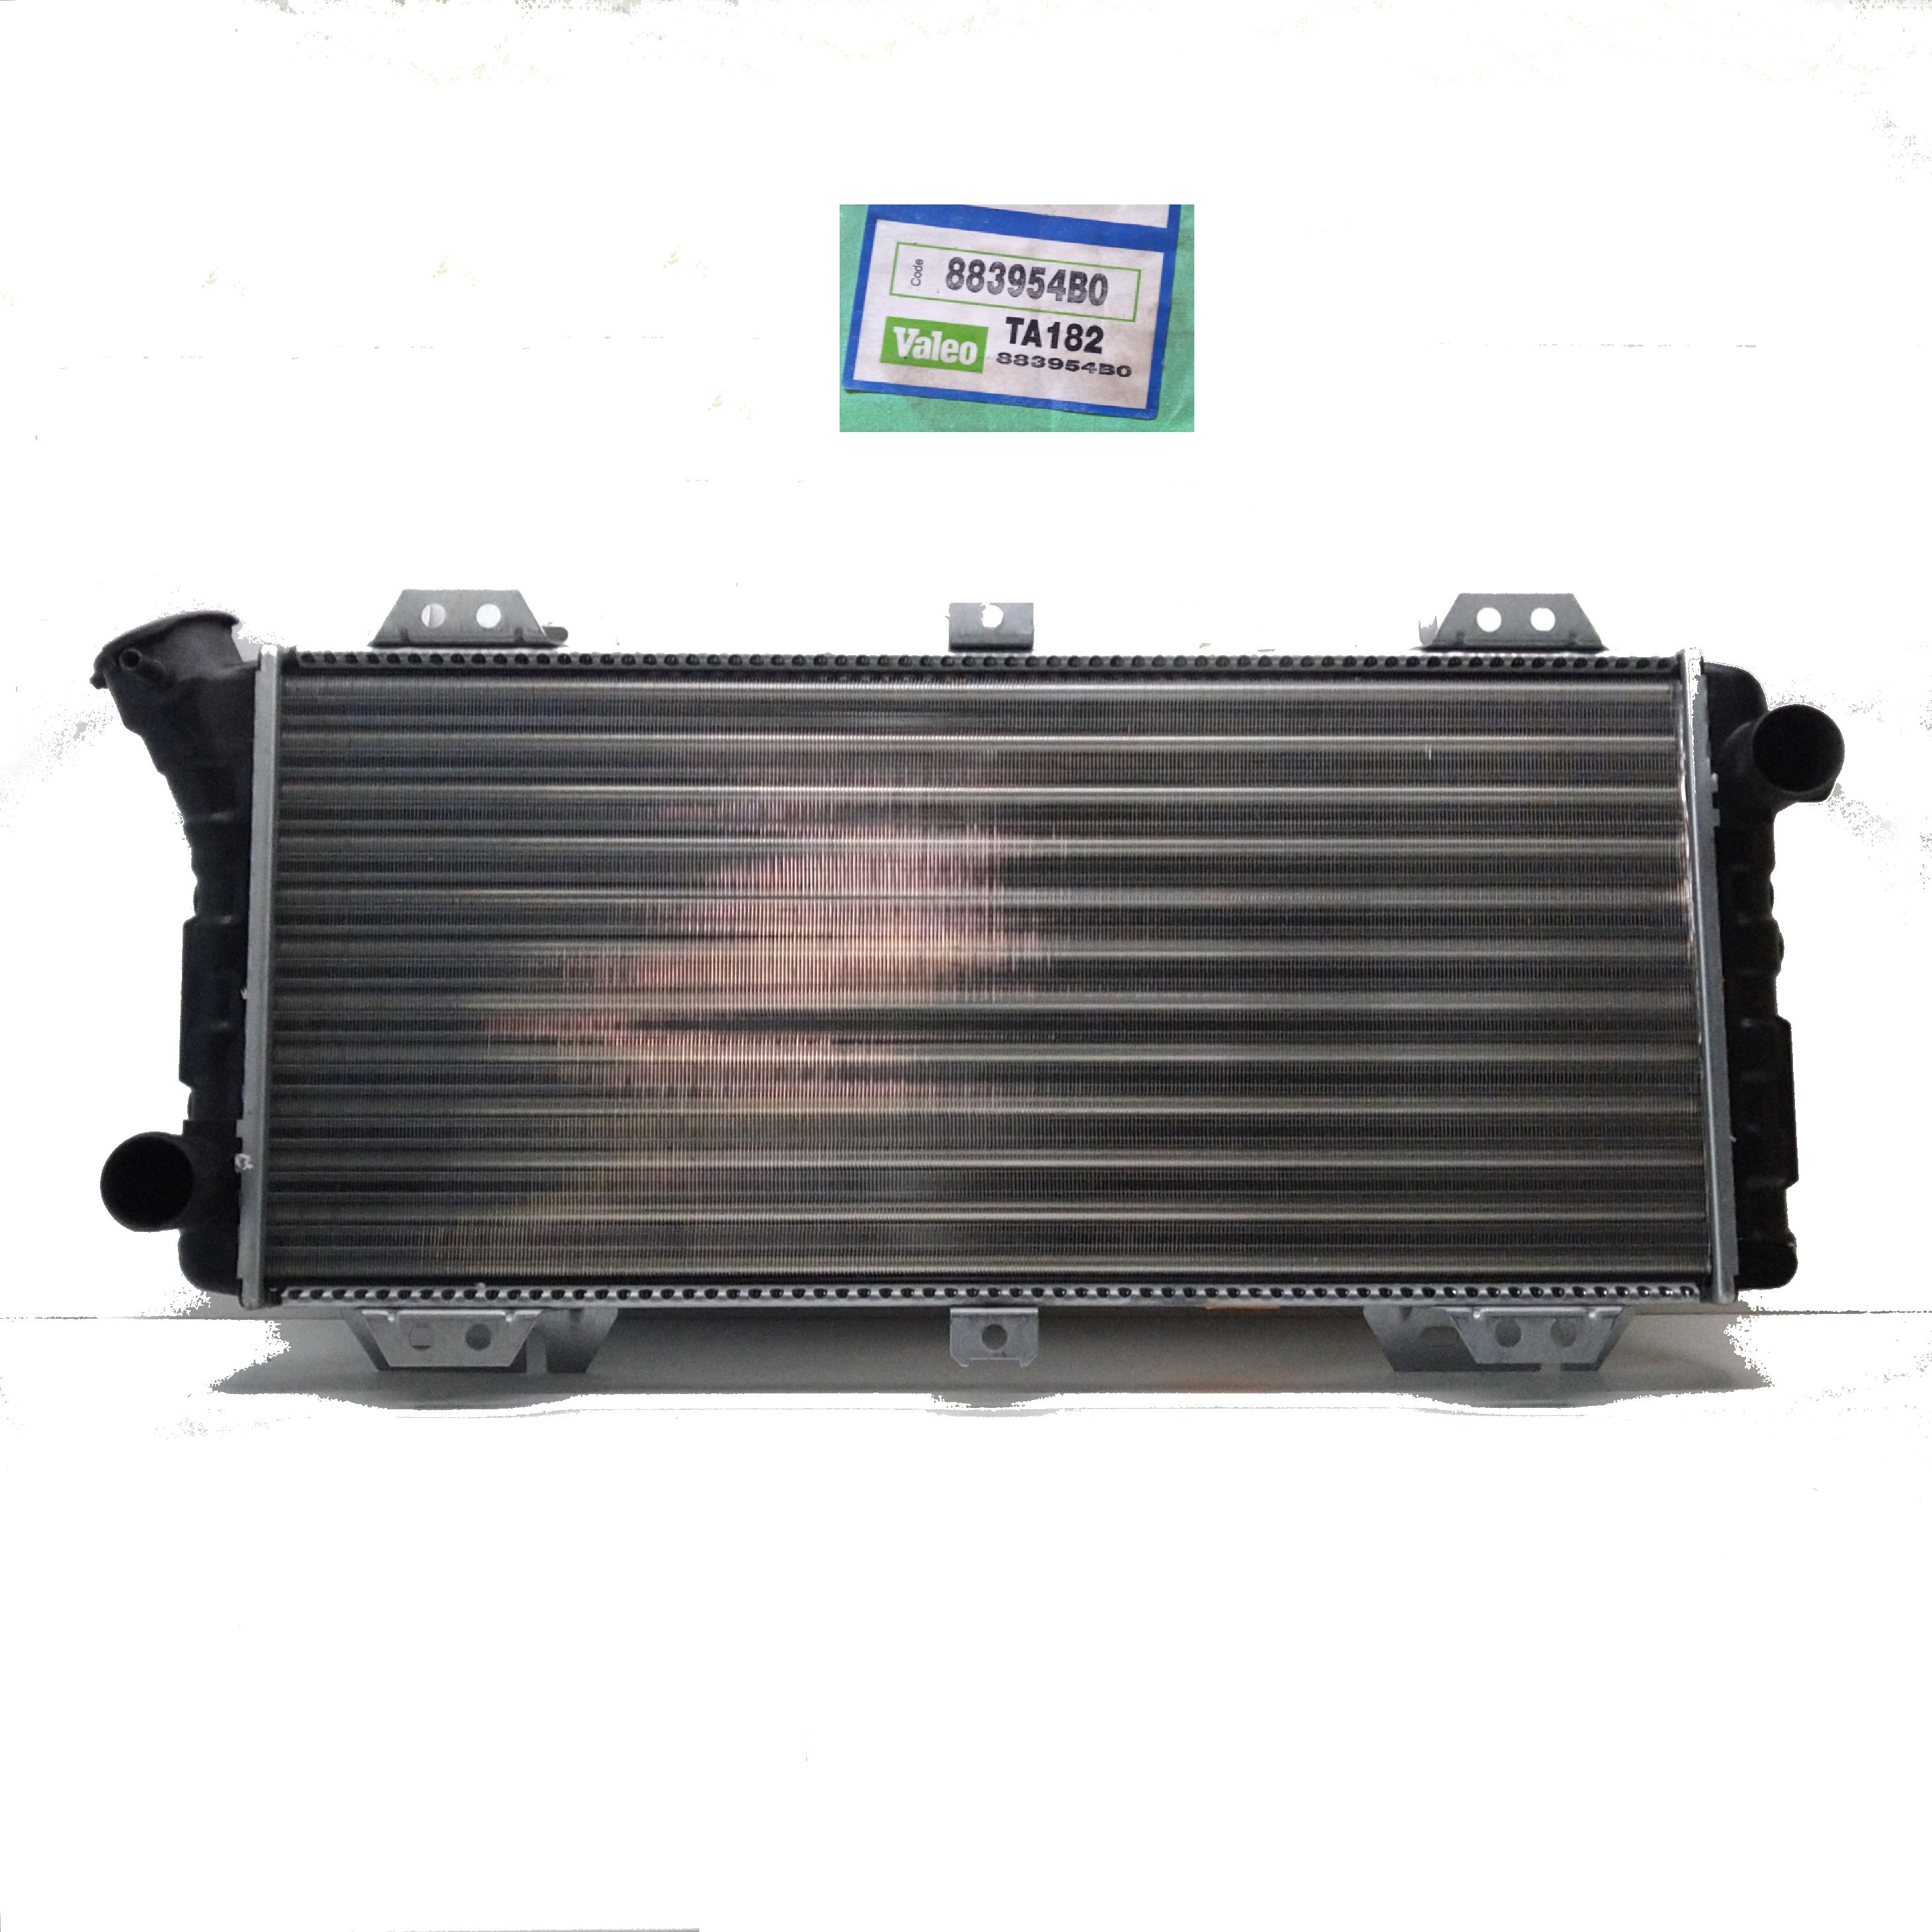 FORD FIESTA I VALEO ENGINE COOLING RADIATOR FOR 6103119